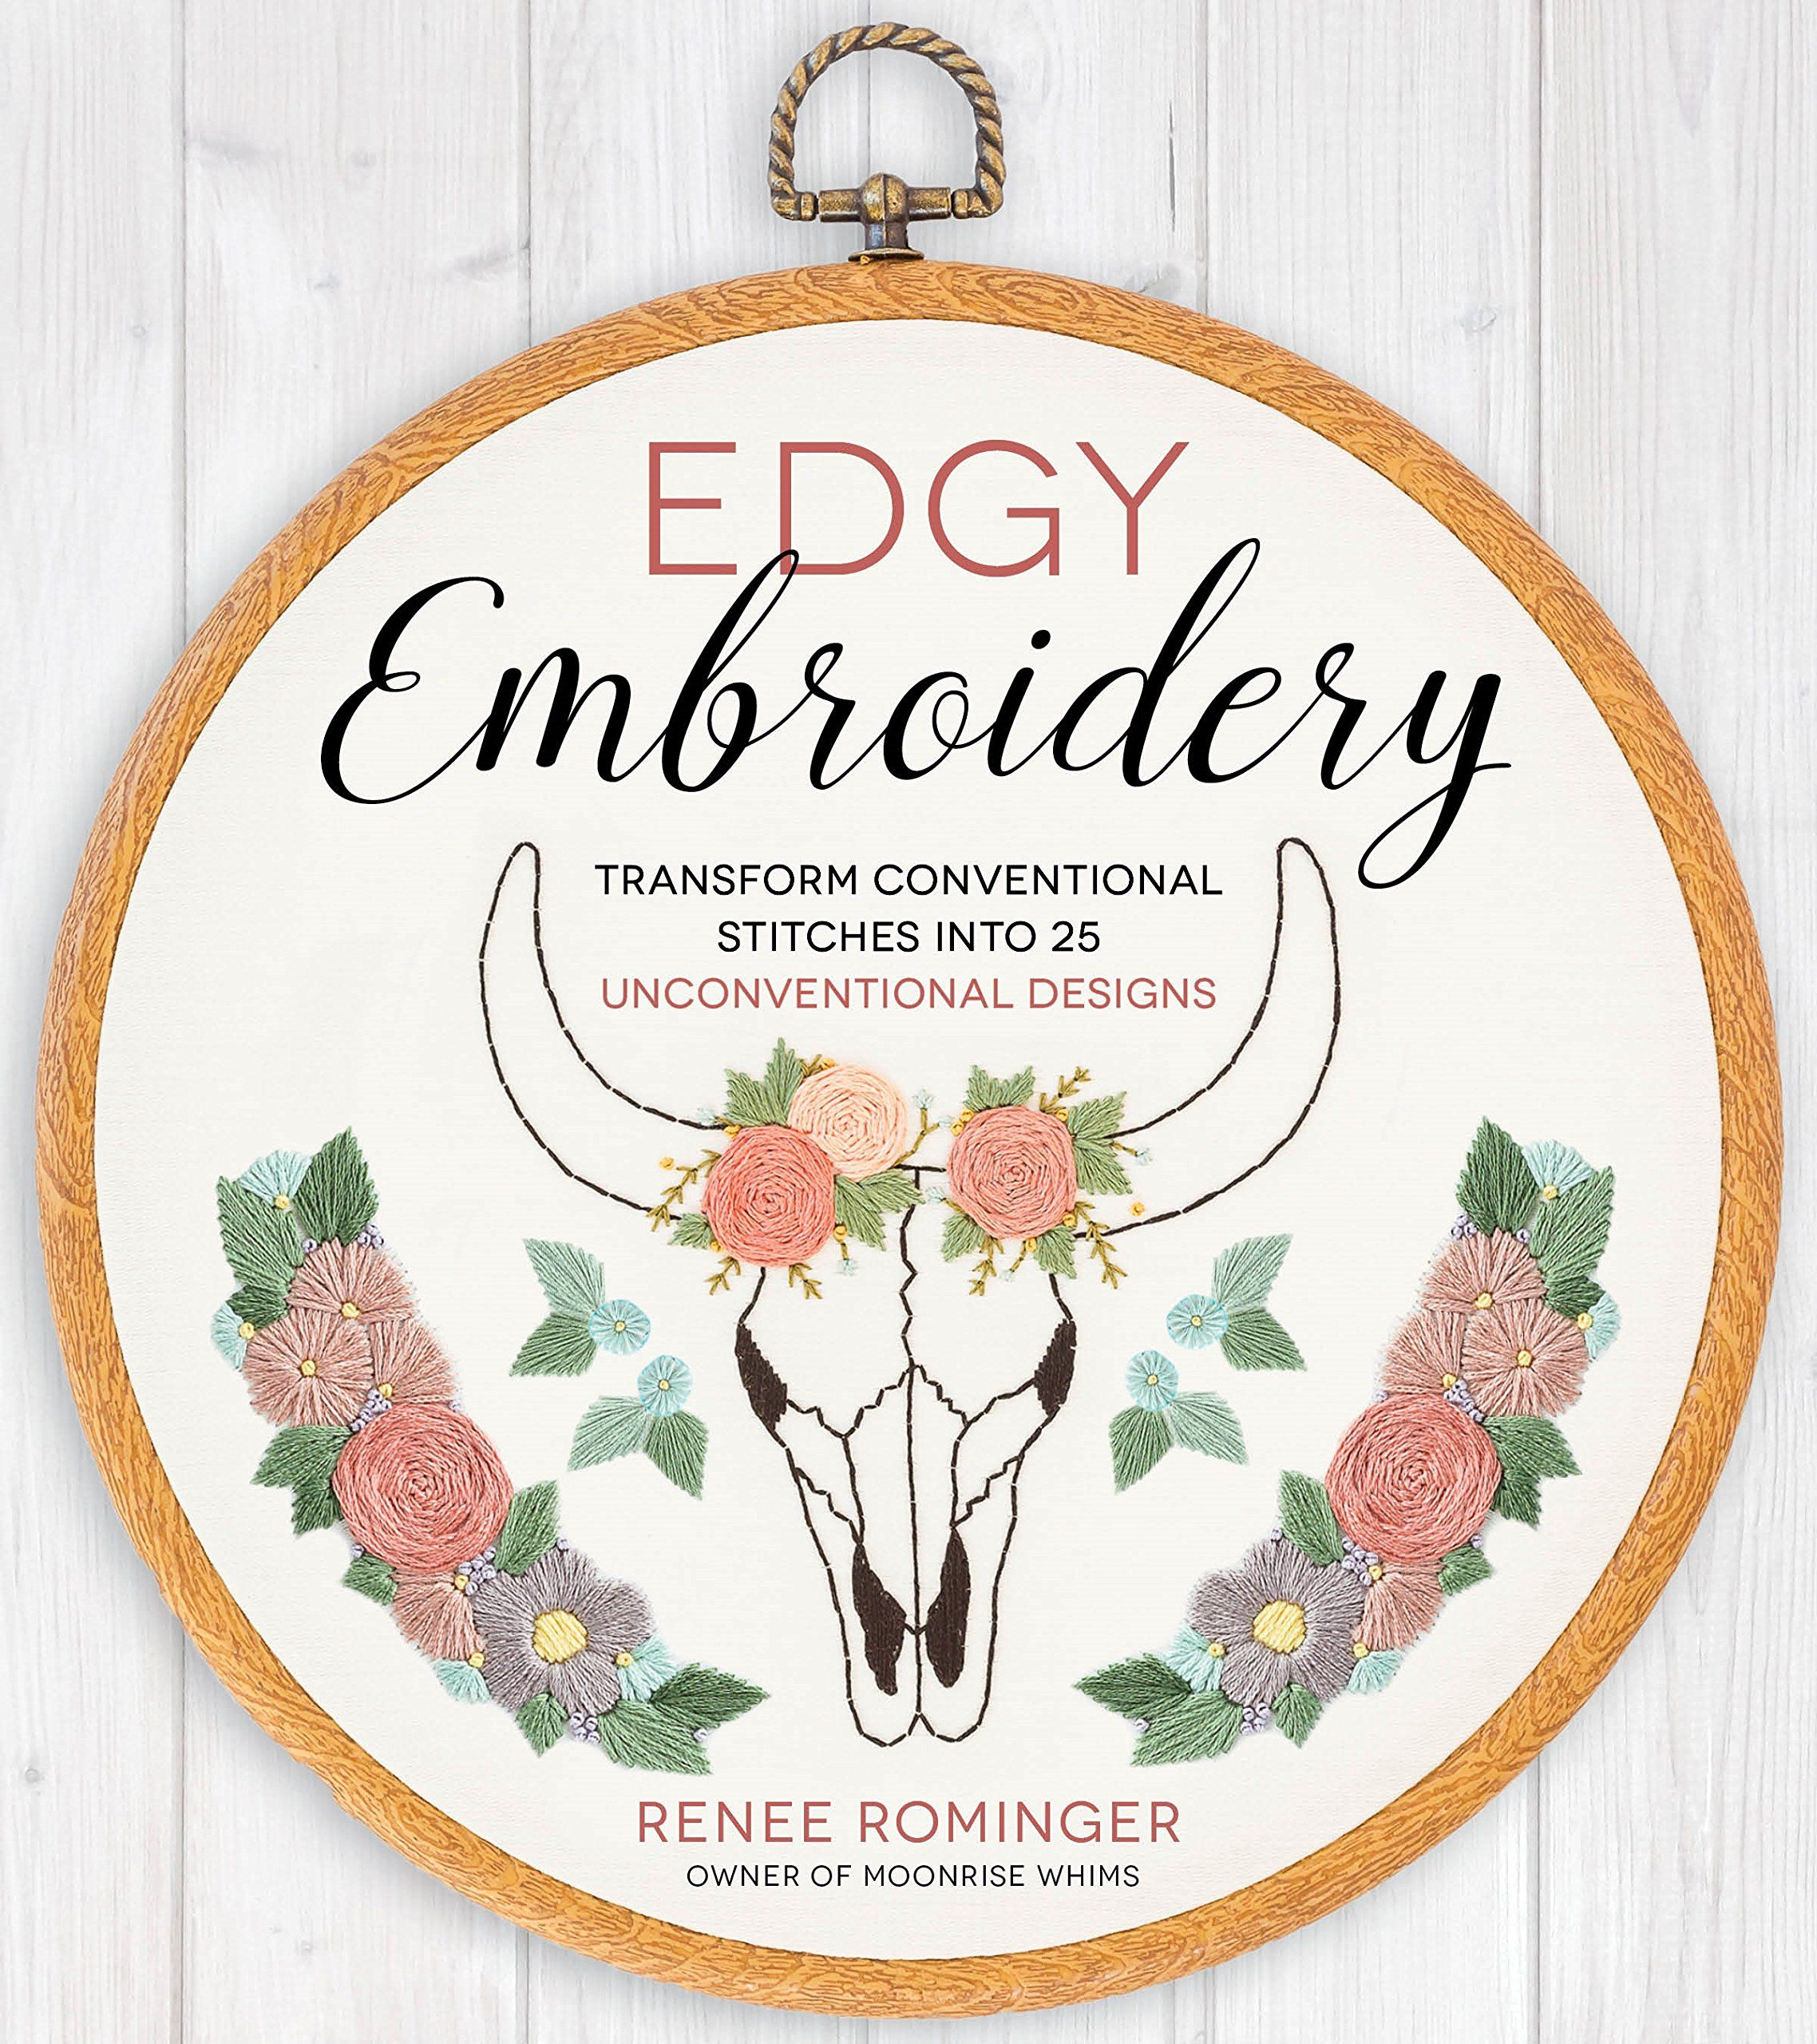 Book cover image of Edgy Embroidery